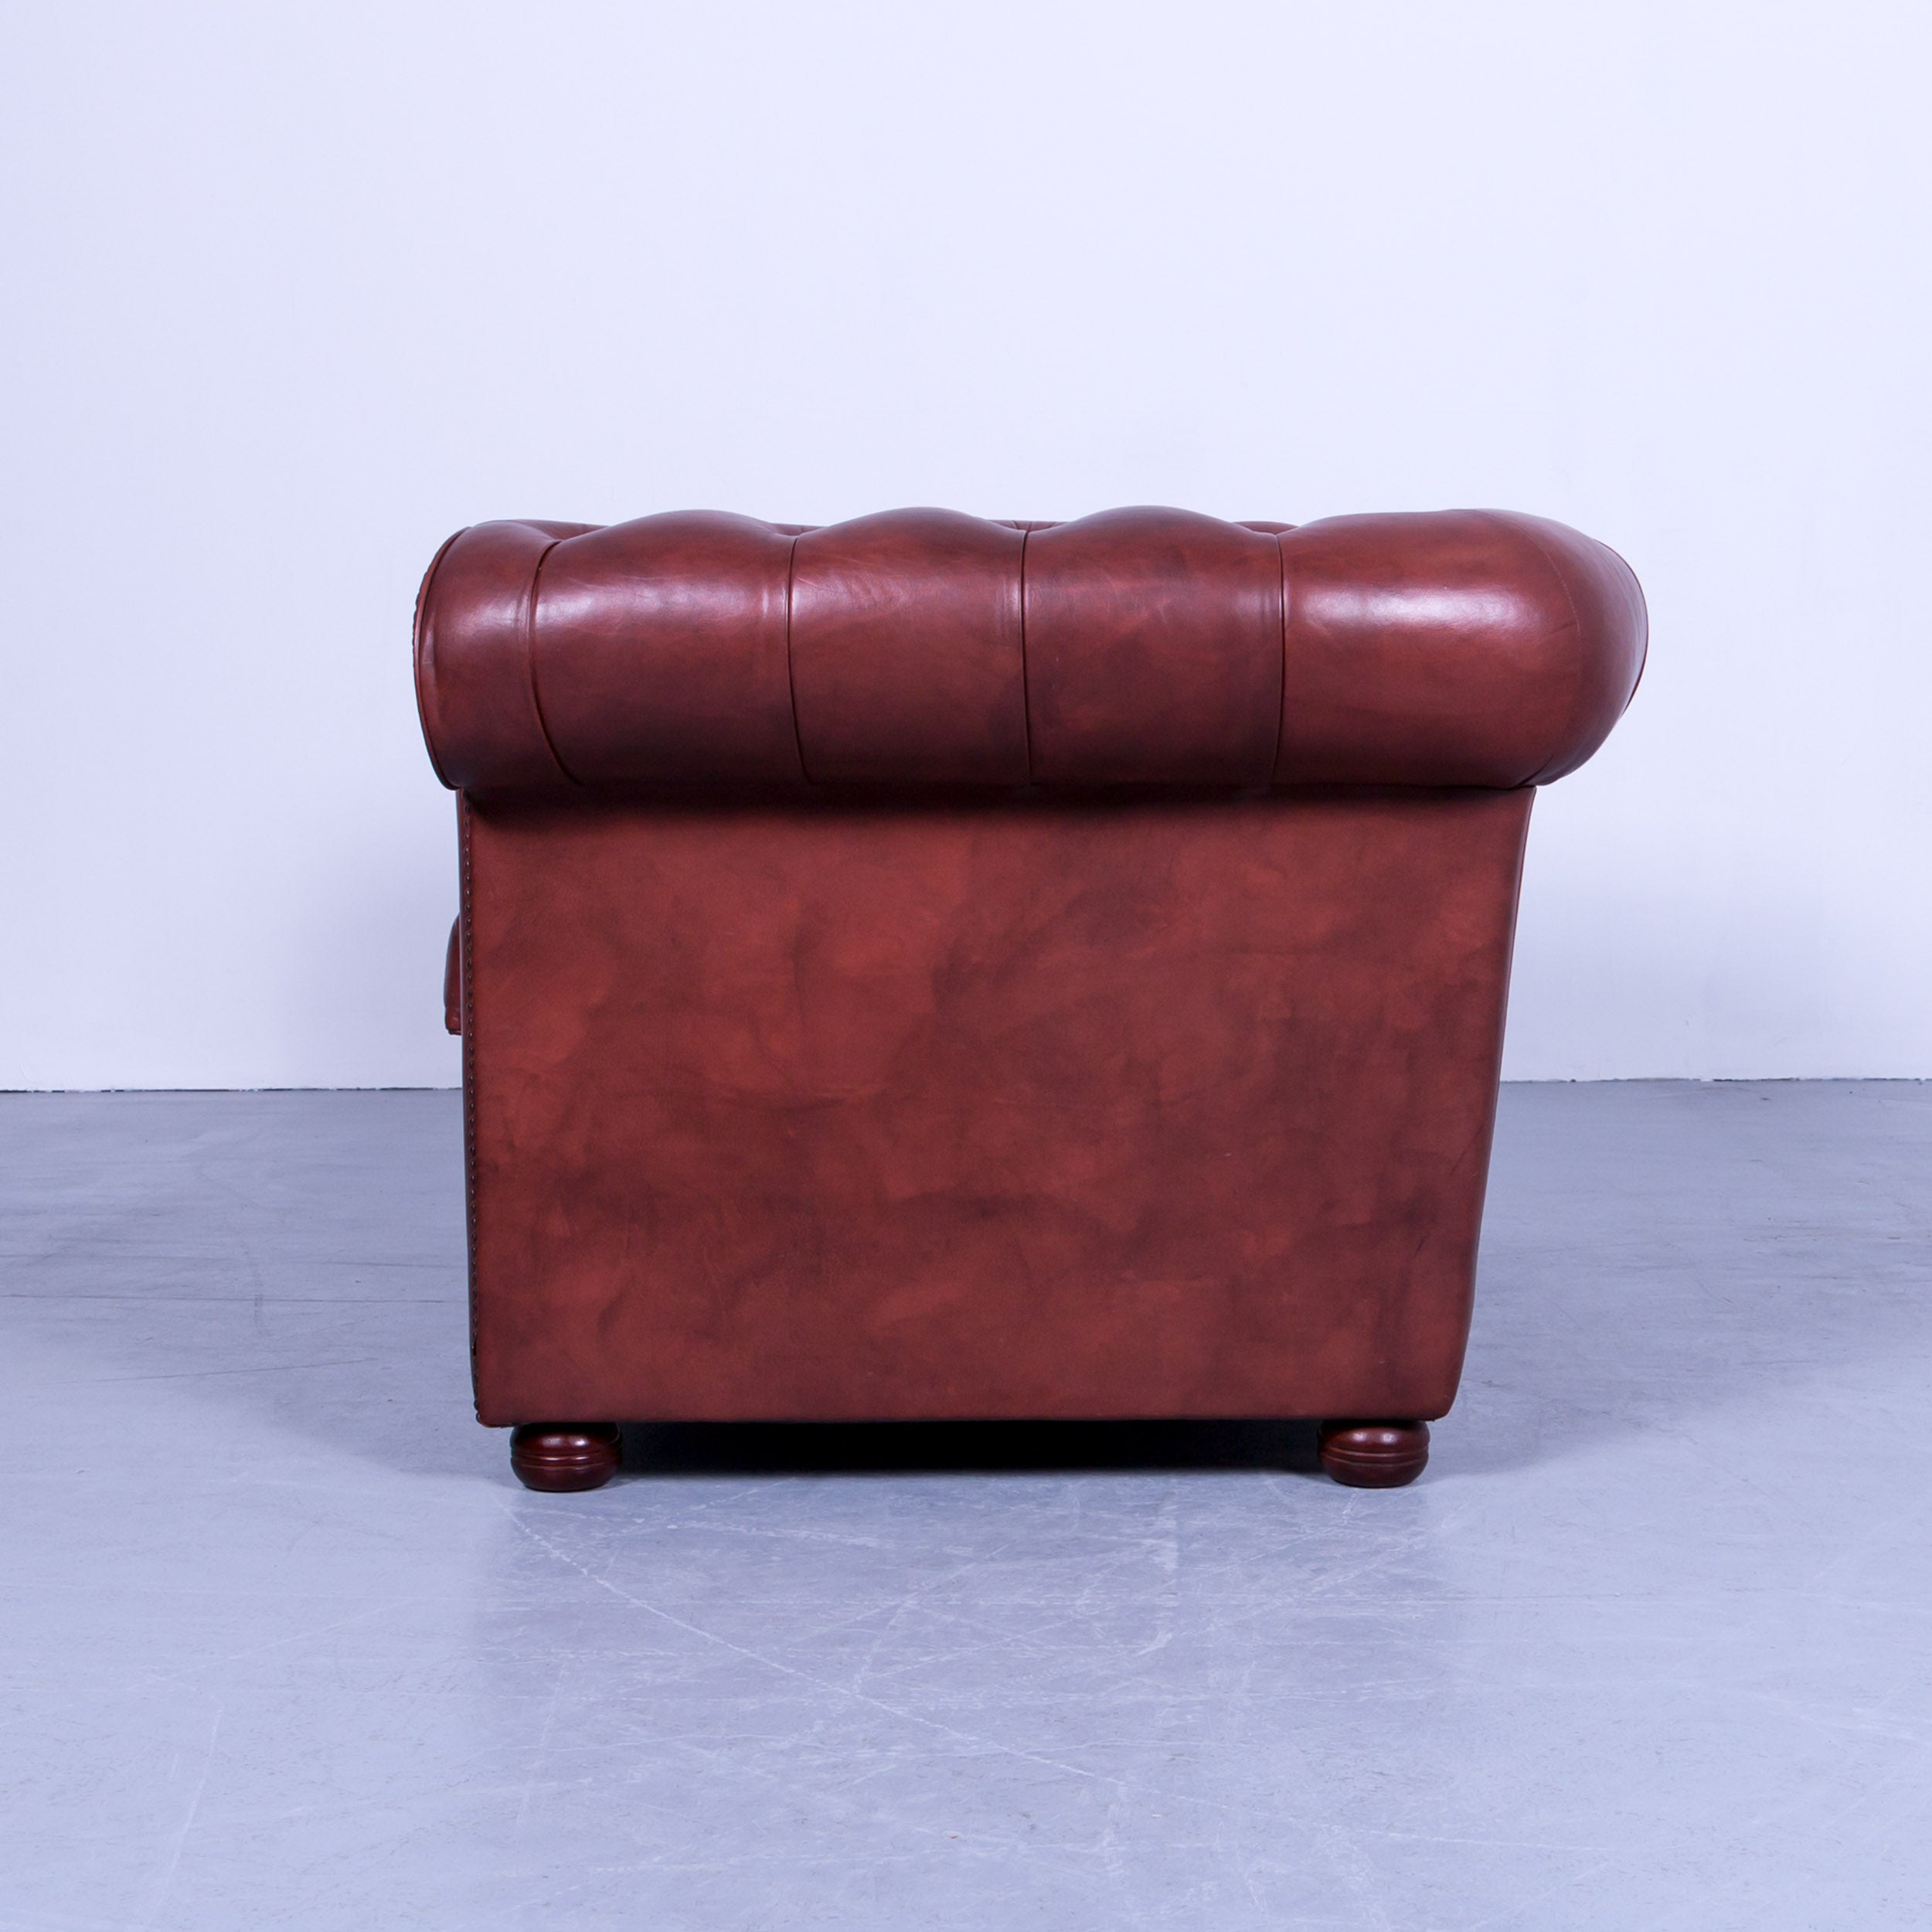 Clubsofa Leder Chesterfield Two Seat Sofa Red Brown Vintage Retro Handmade Rivets